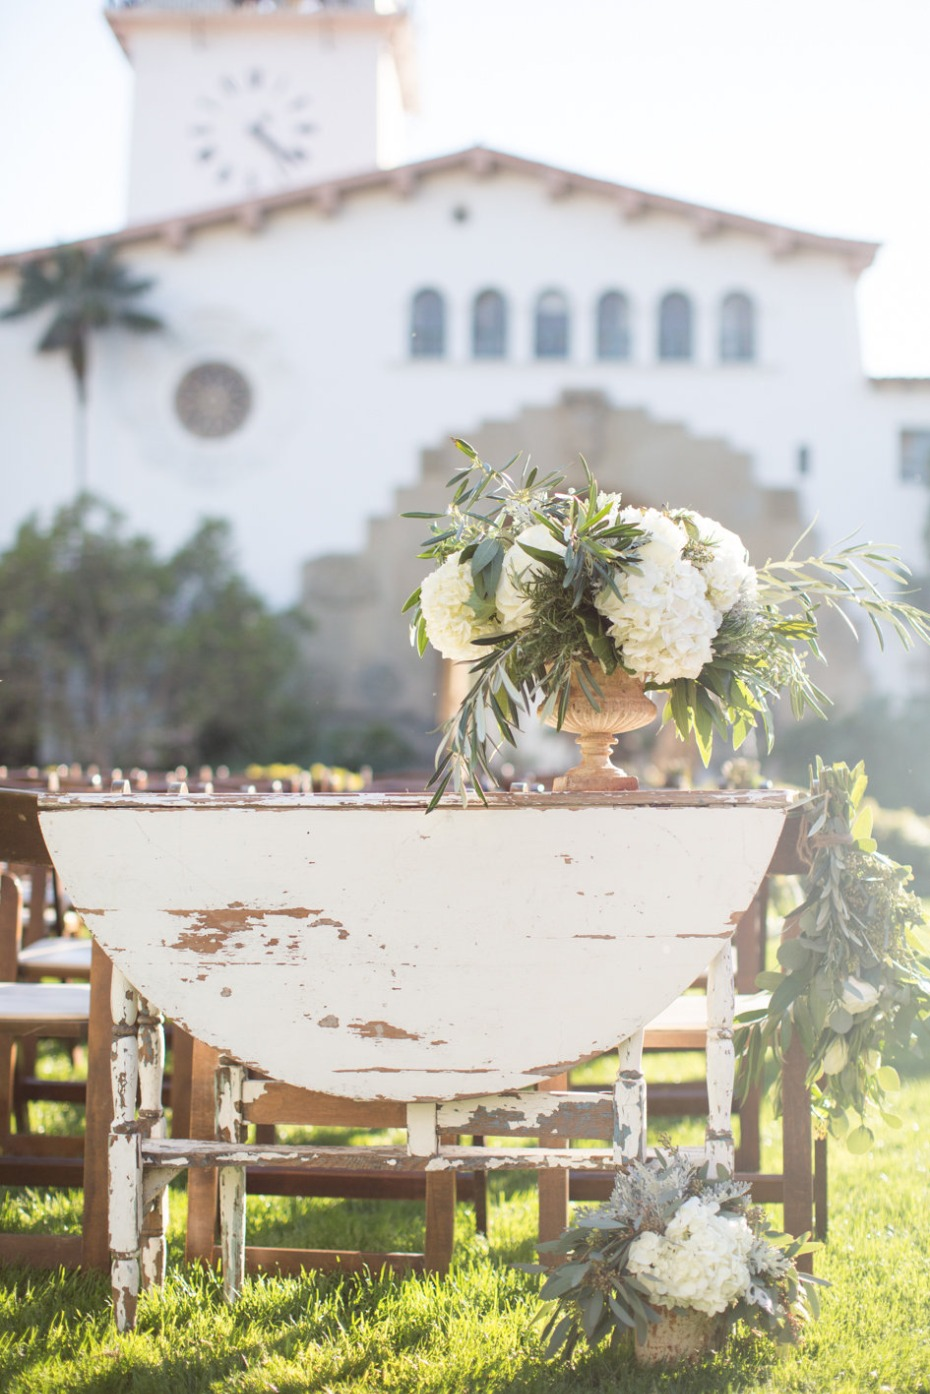 Vintage chic ceremony table